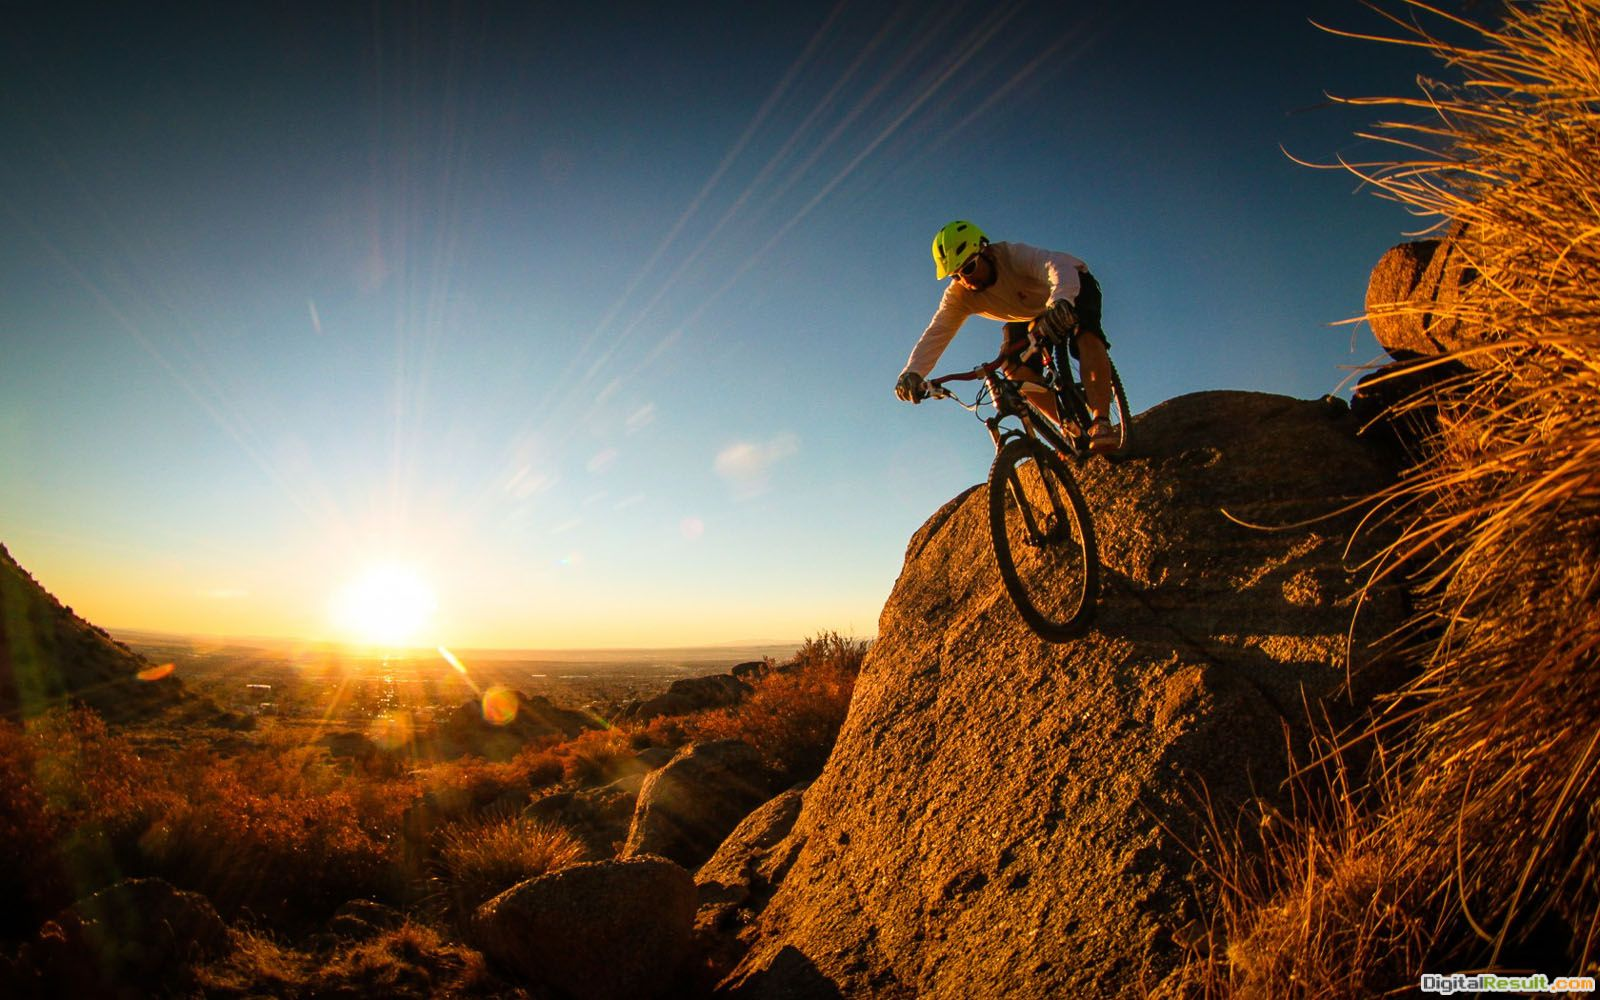 Cyclist With Mountain Bike On Hills 2013 Hd Desktop Wallpaper ~ C a T 1411